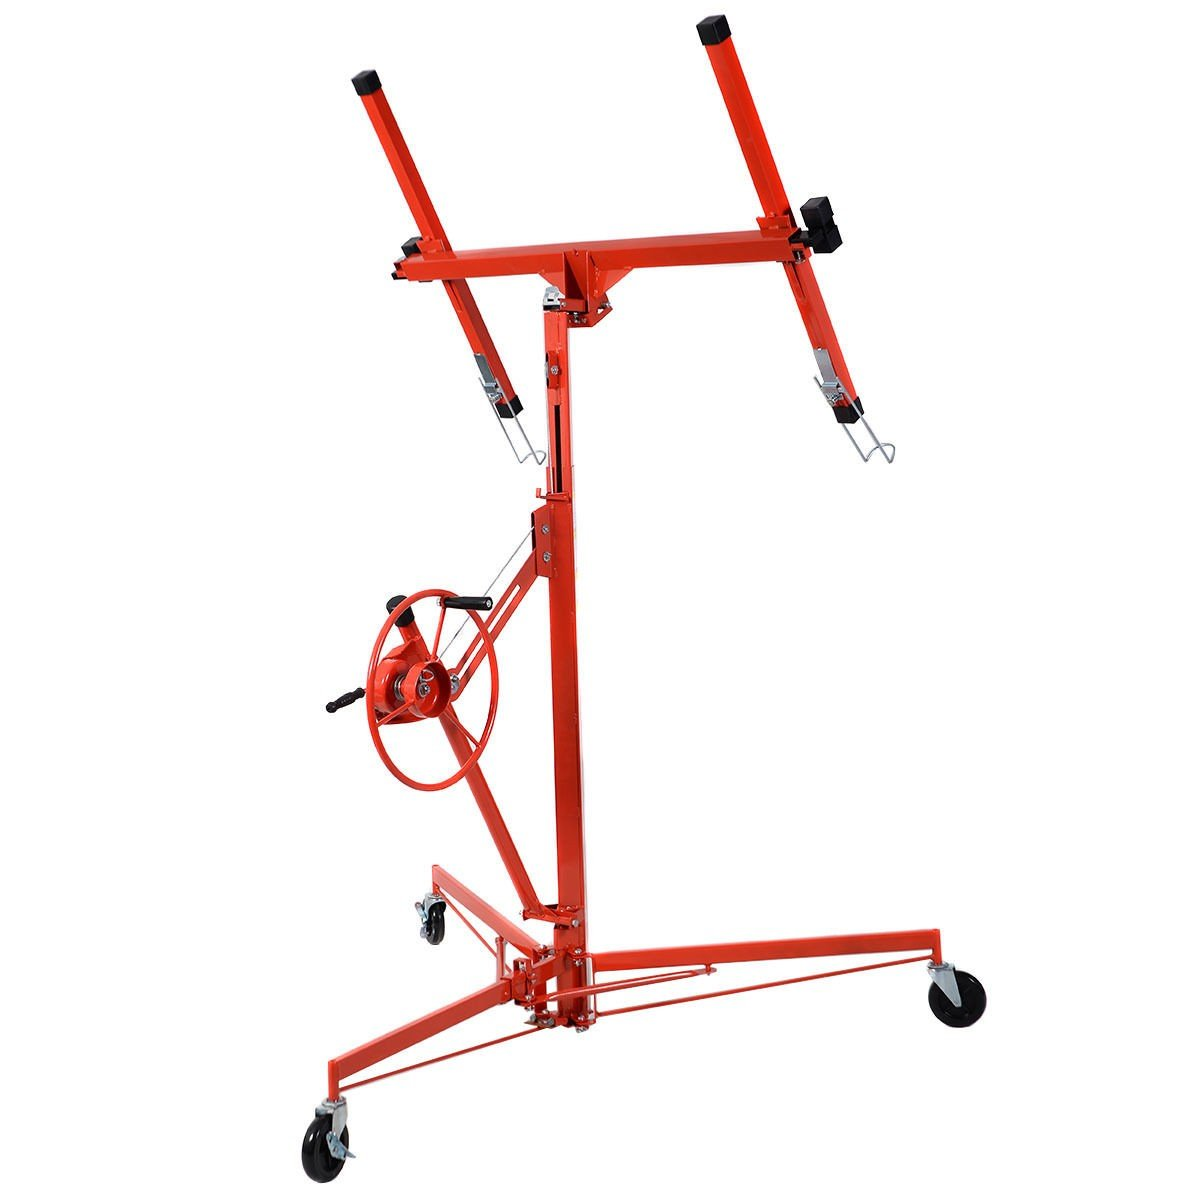 11' Drywall Lift Panel Hoist Dry Wall Jack Rolling Caster Lifter Lockable - By Choice Products